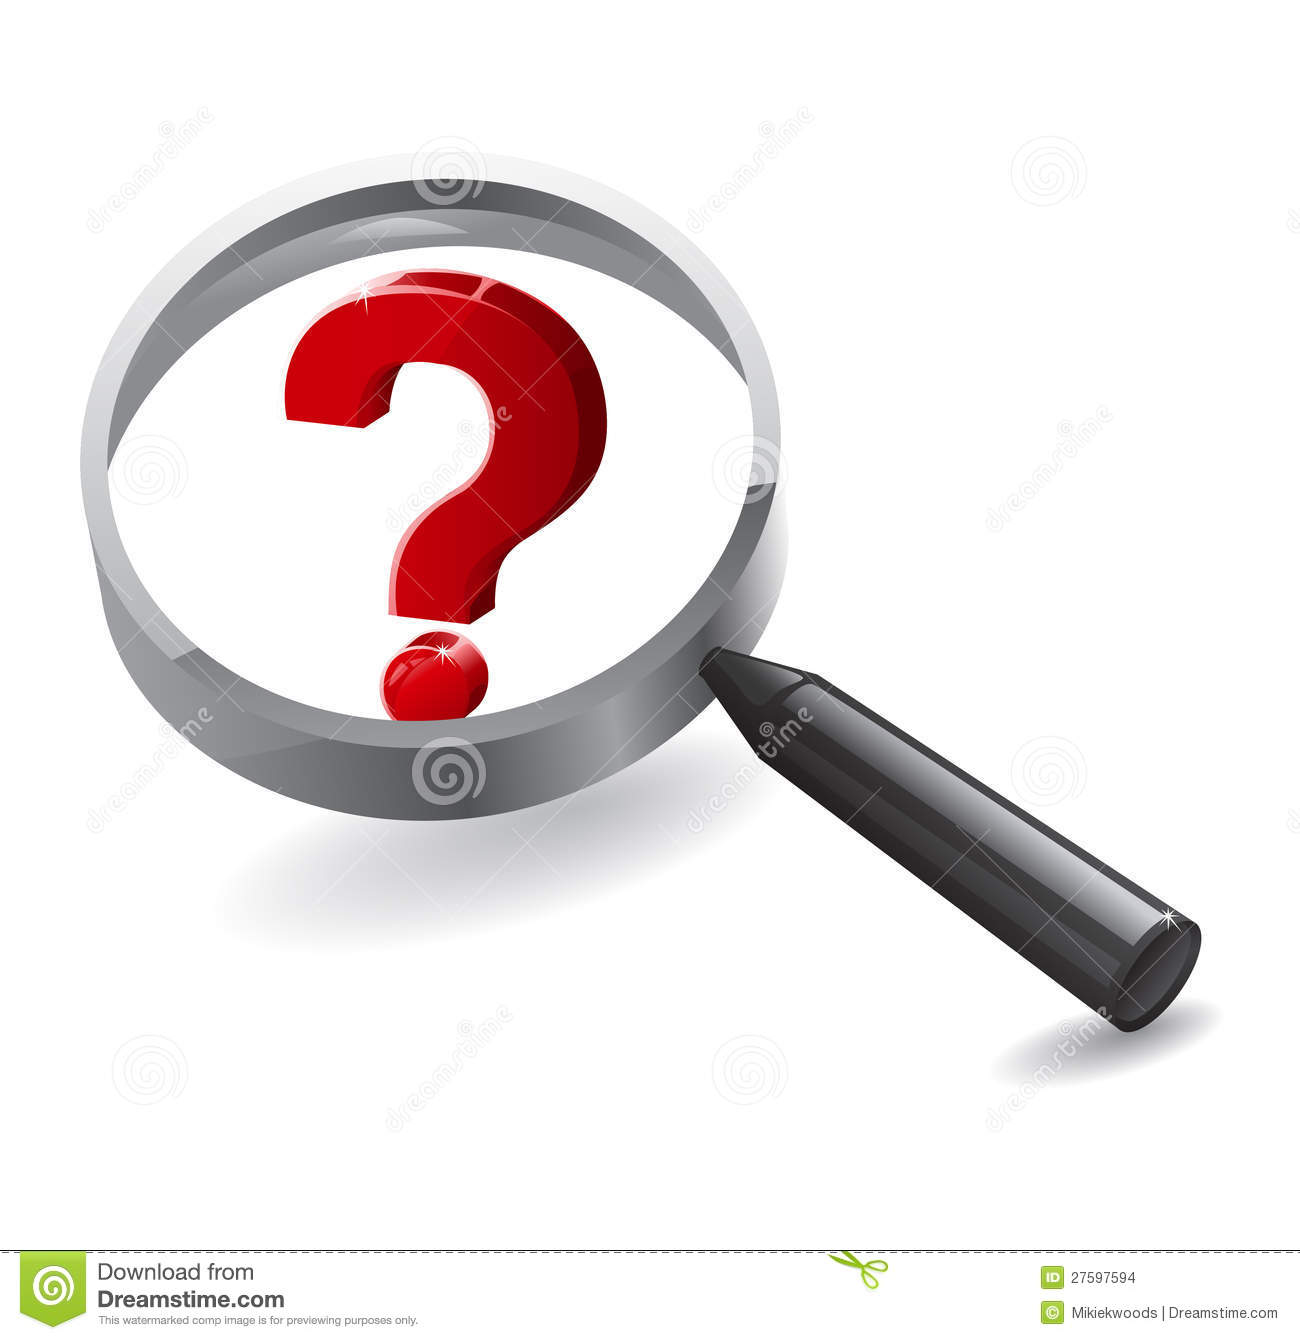 Search Magnifying Questions Stock Images - Image: 27597594: dreamstime.com/stock-images-search-magnifying-questions-image27597594